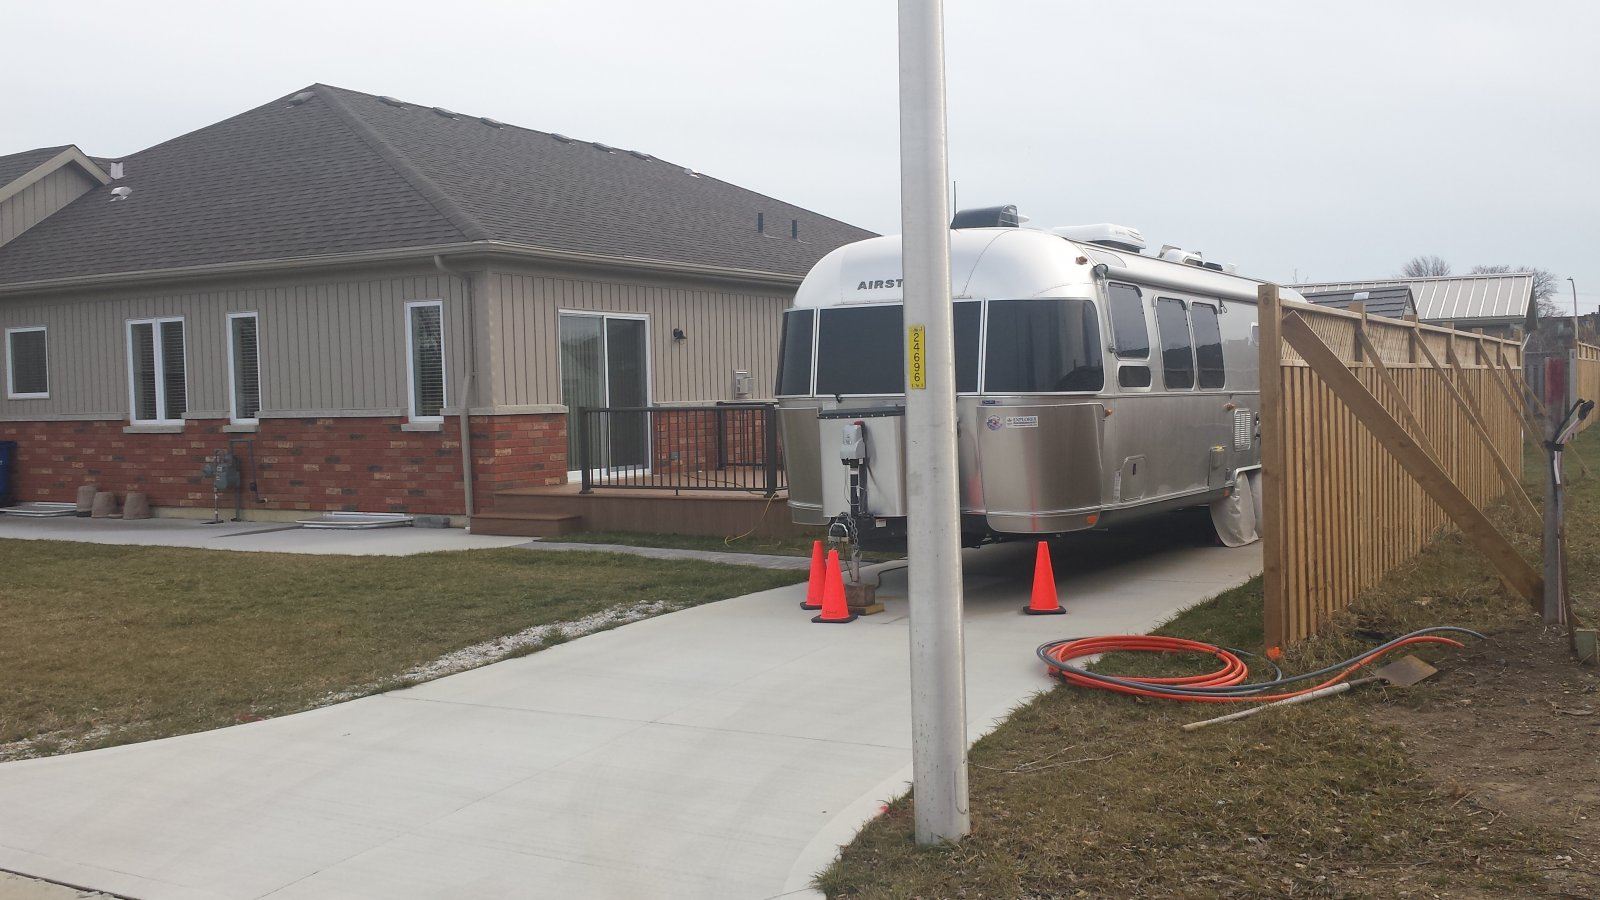 Click image for larger version  Name:Airstream on back pad.jpg Views:113 Size:227.5 KB ID:281845